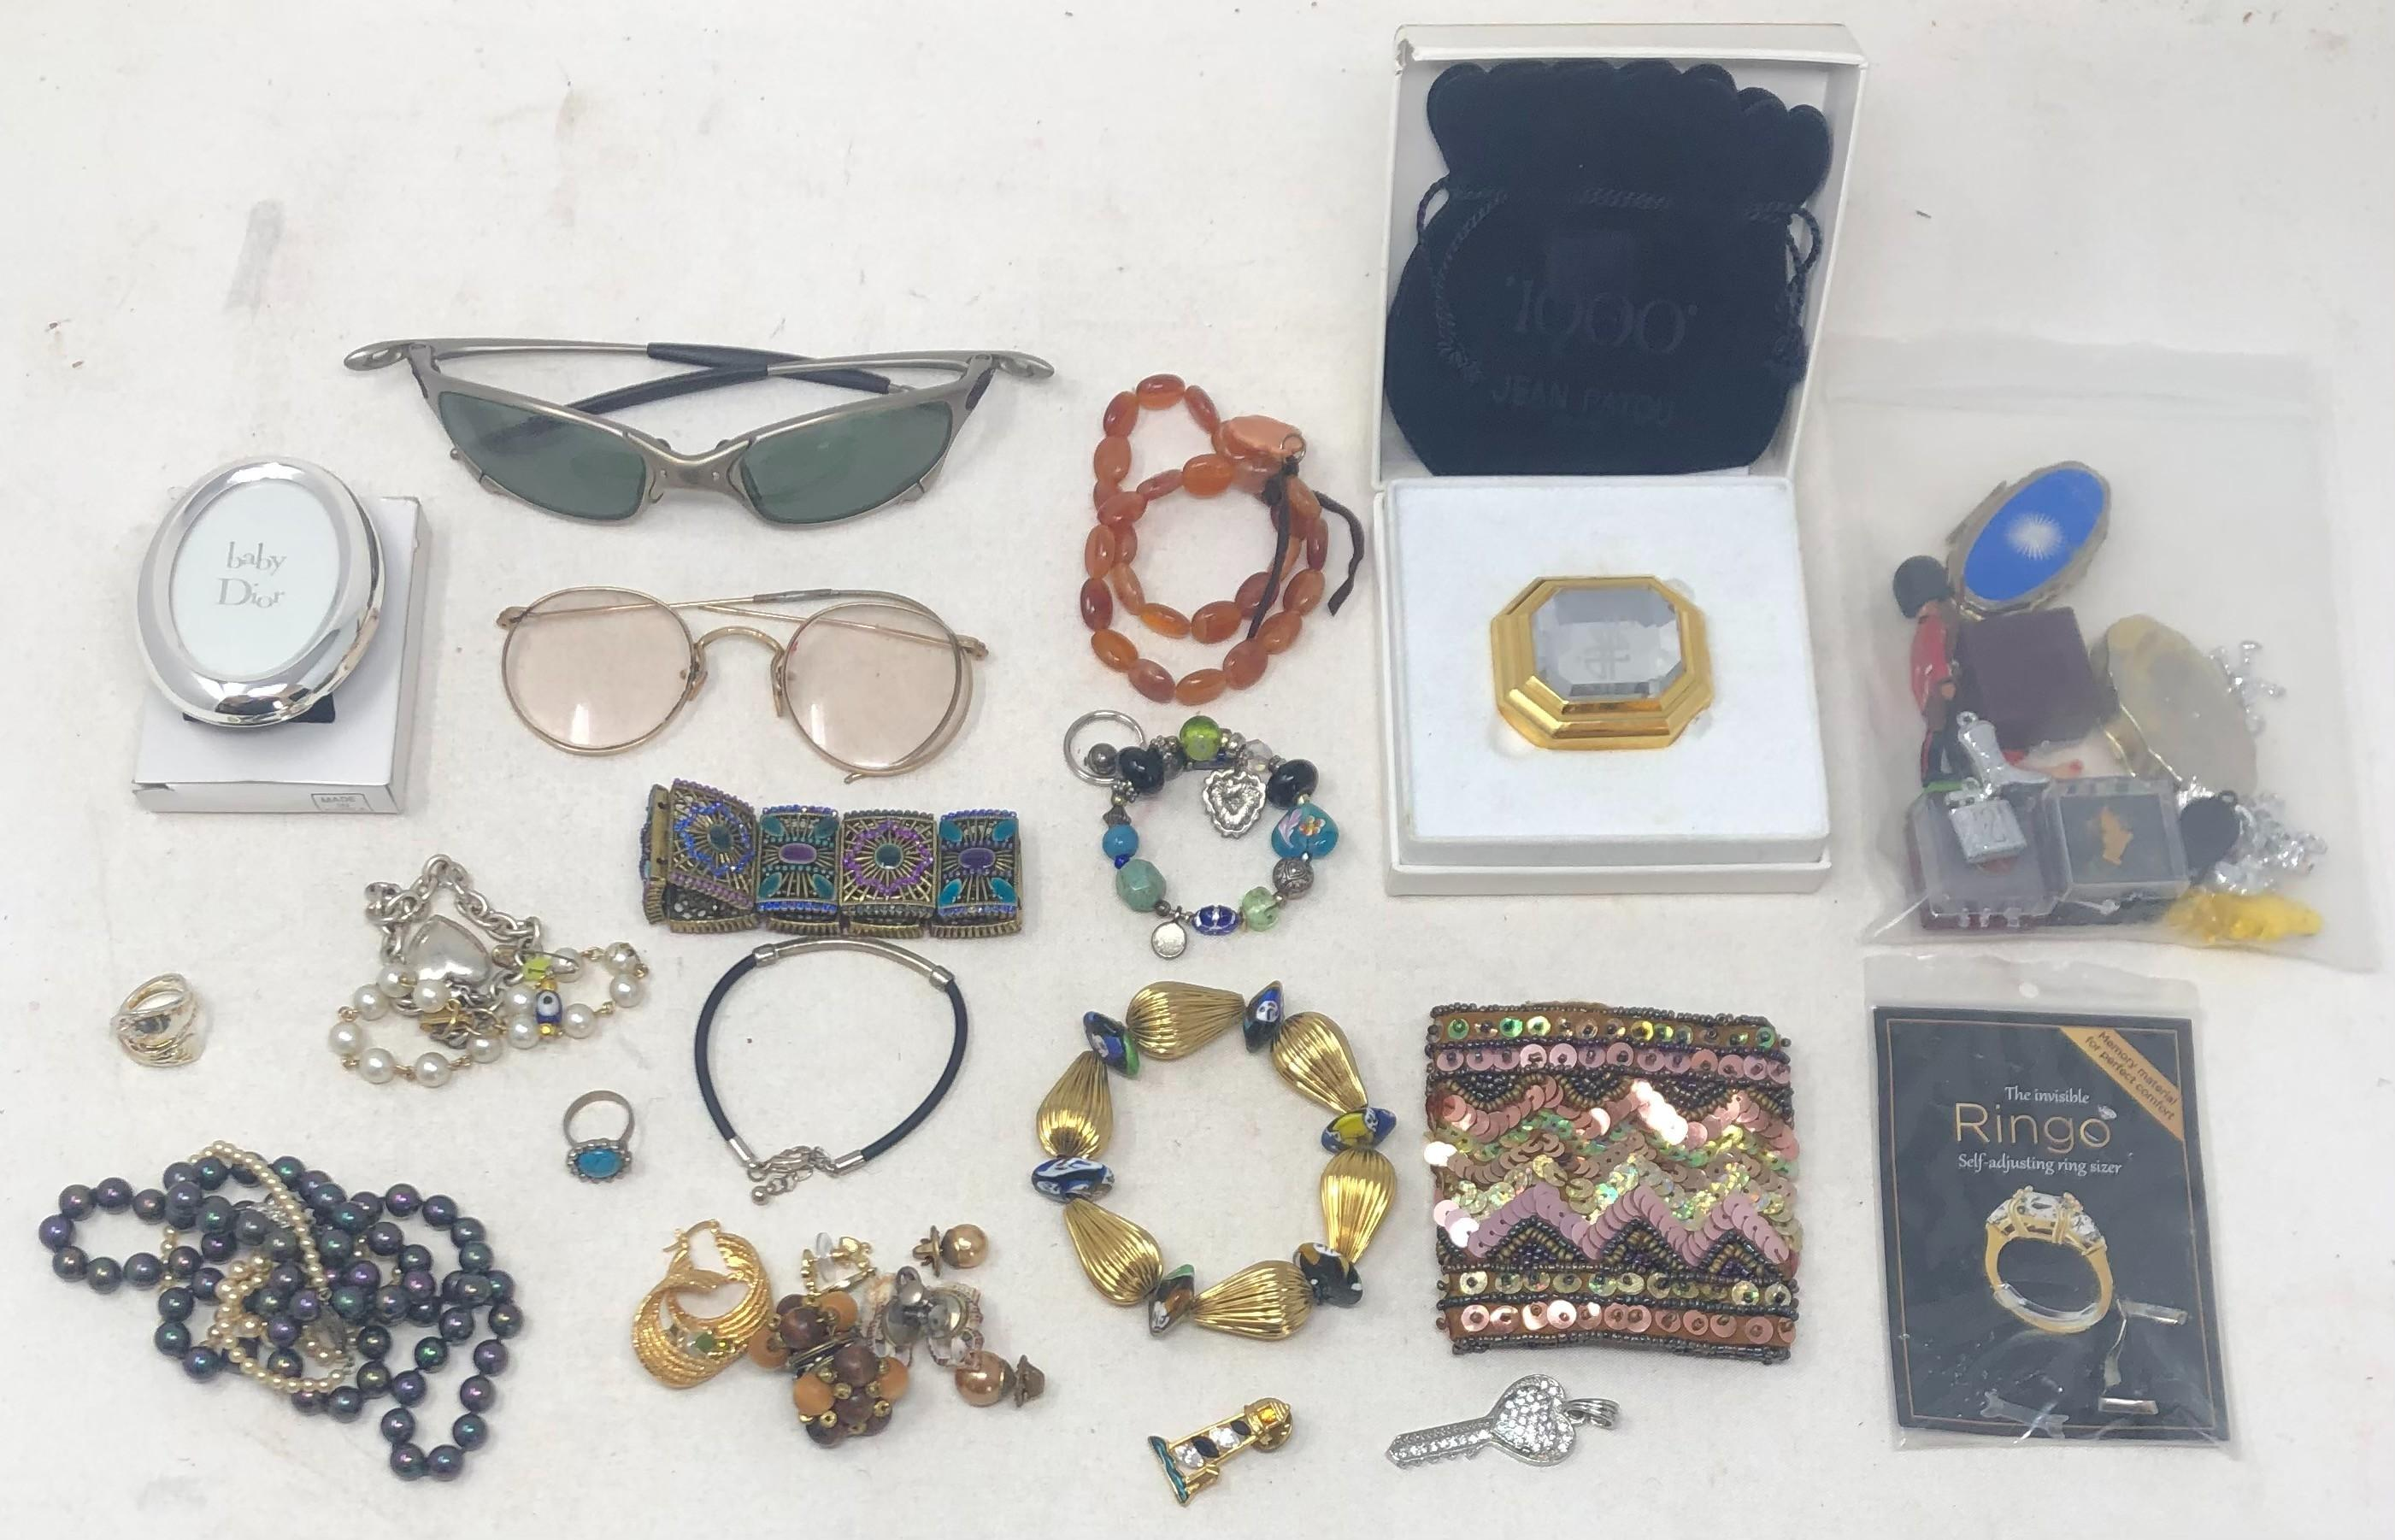 Jean Patou parfum solide case (with bag, original box), Baby Dion oval frame, two pairs glasses, one collapsible sun, other antique wire (frame broken); black pearlescent necklace, 24 inches; vintage faux childs pearl...